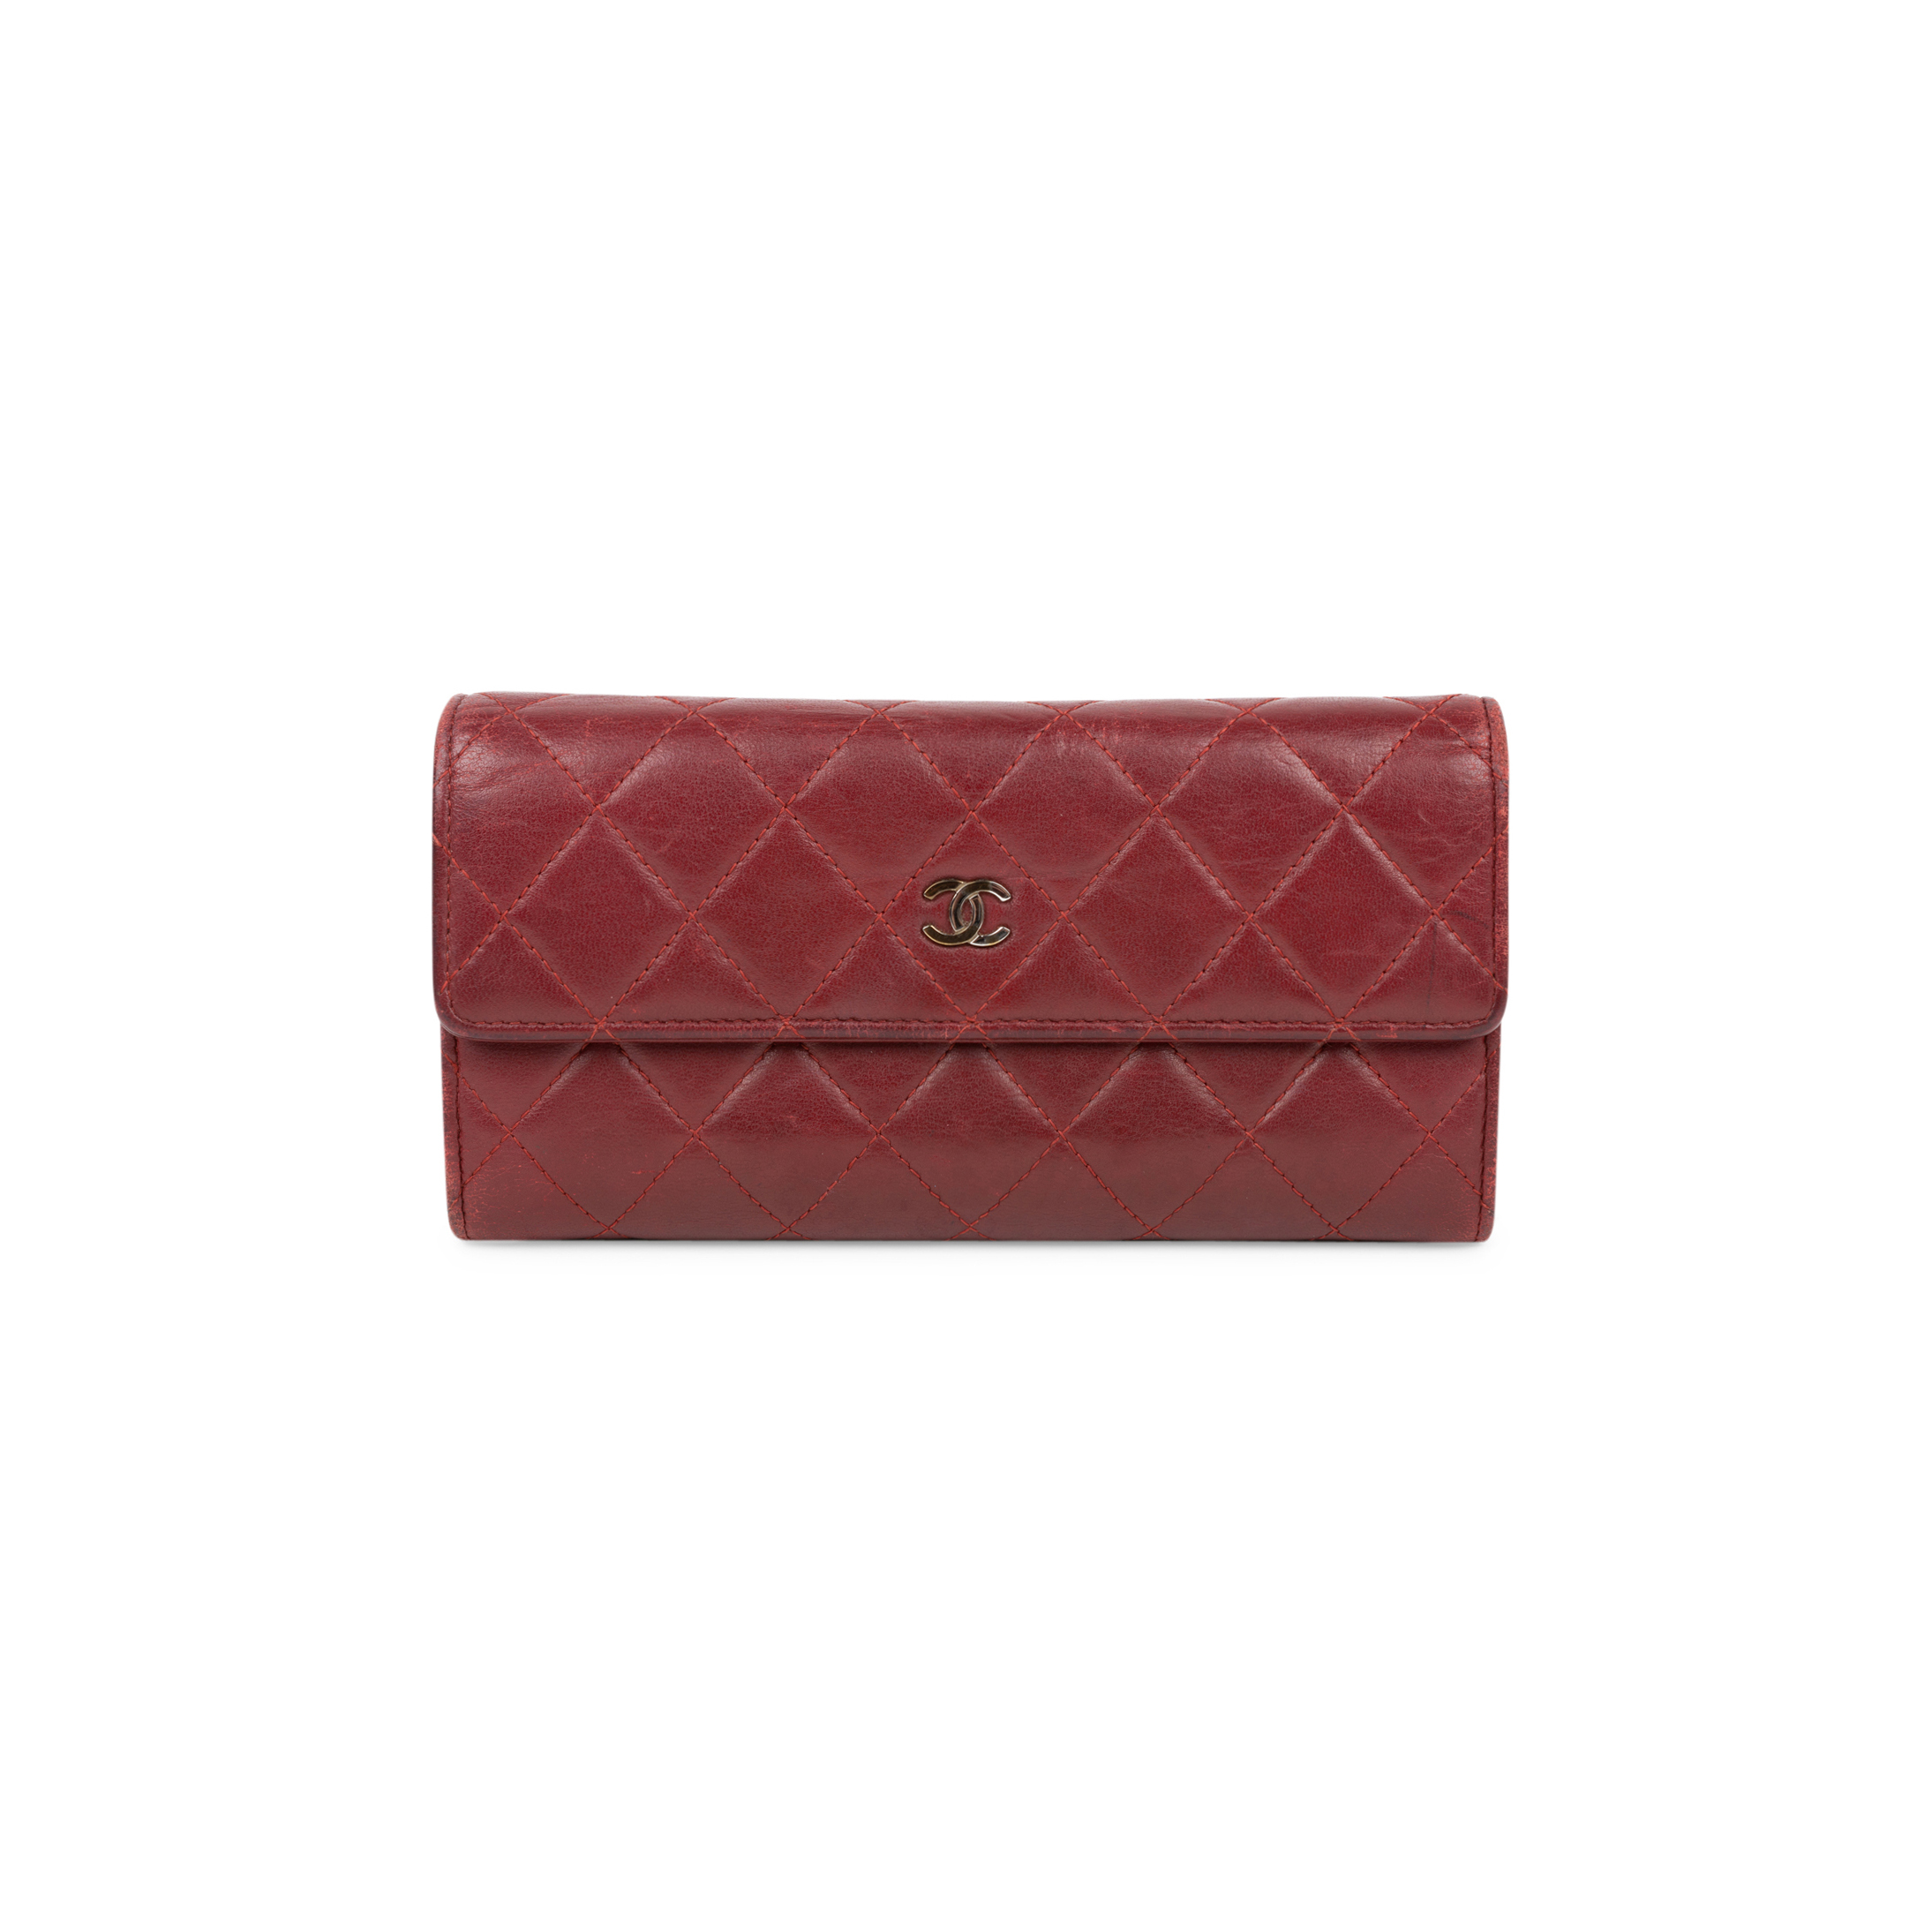 0f96192f1c78 Authentic Second Hand Chanel Quilted Classic Flap Wallet (PSS-566-00070) |  THE FIFTH COLLECTION